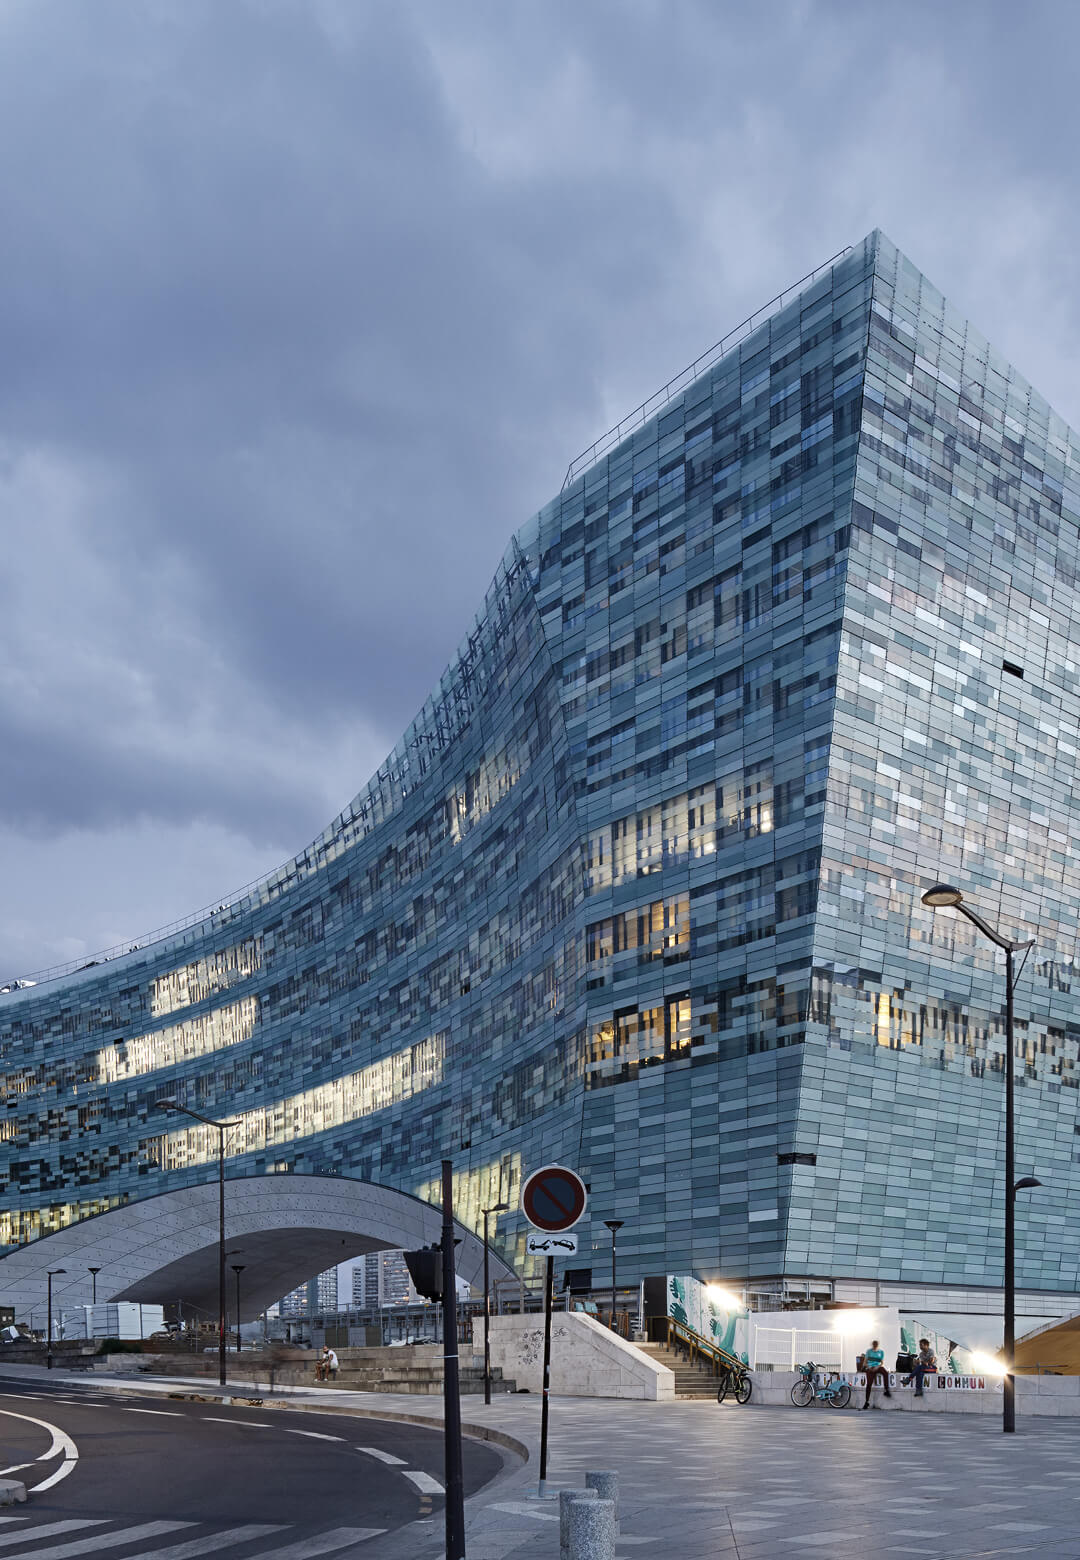 Snøhetta completes the glass-clad central headquarters for French publishing group Le Monde in Paris, France | Le Monde Group HQ designed by Snøhetta | STIRworld